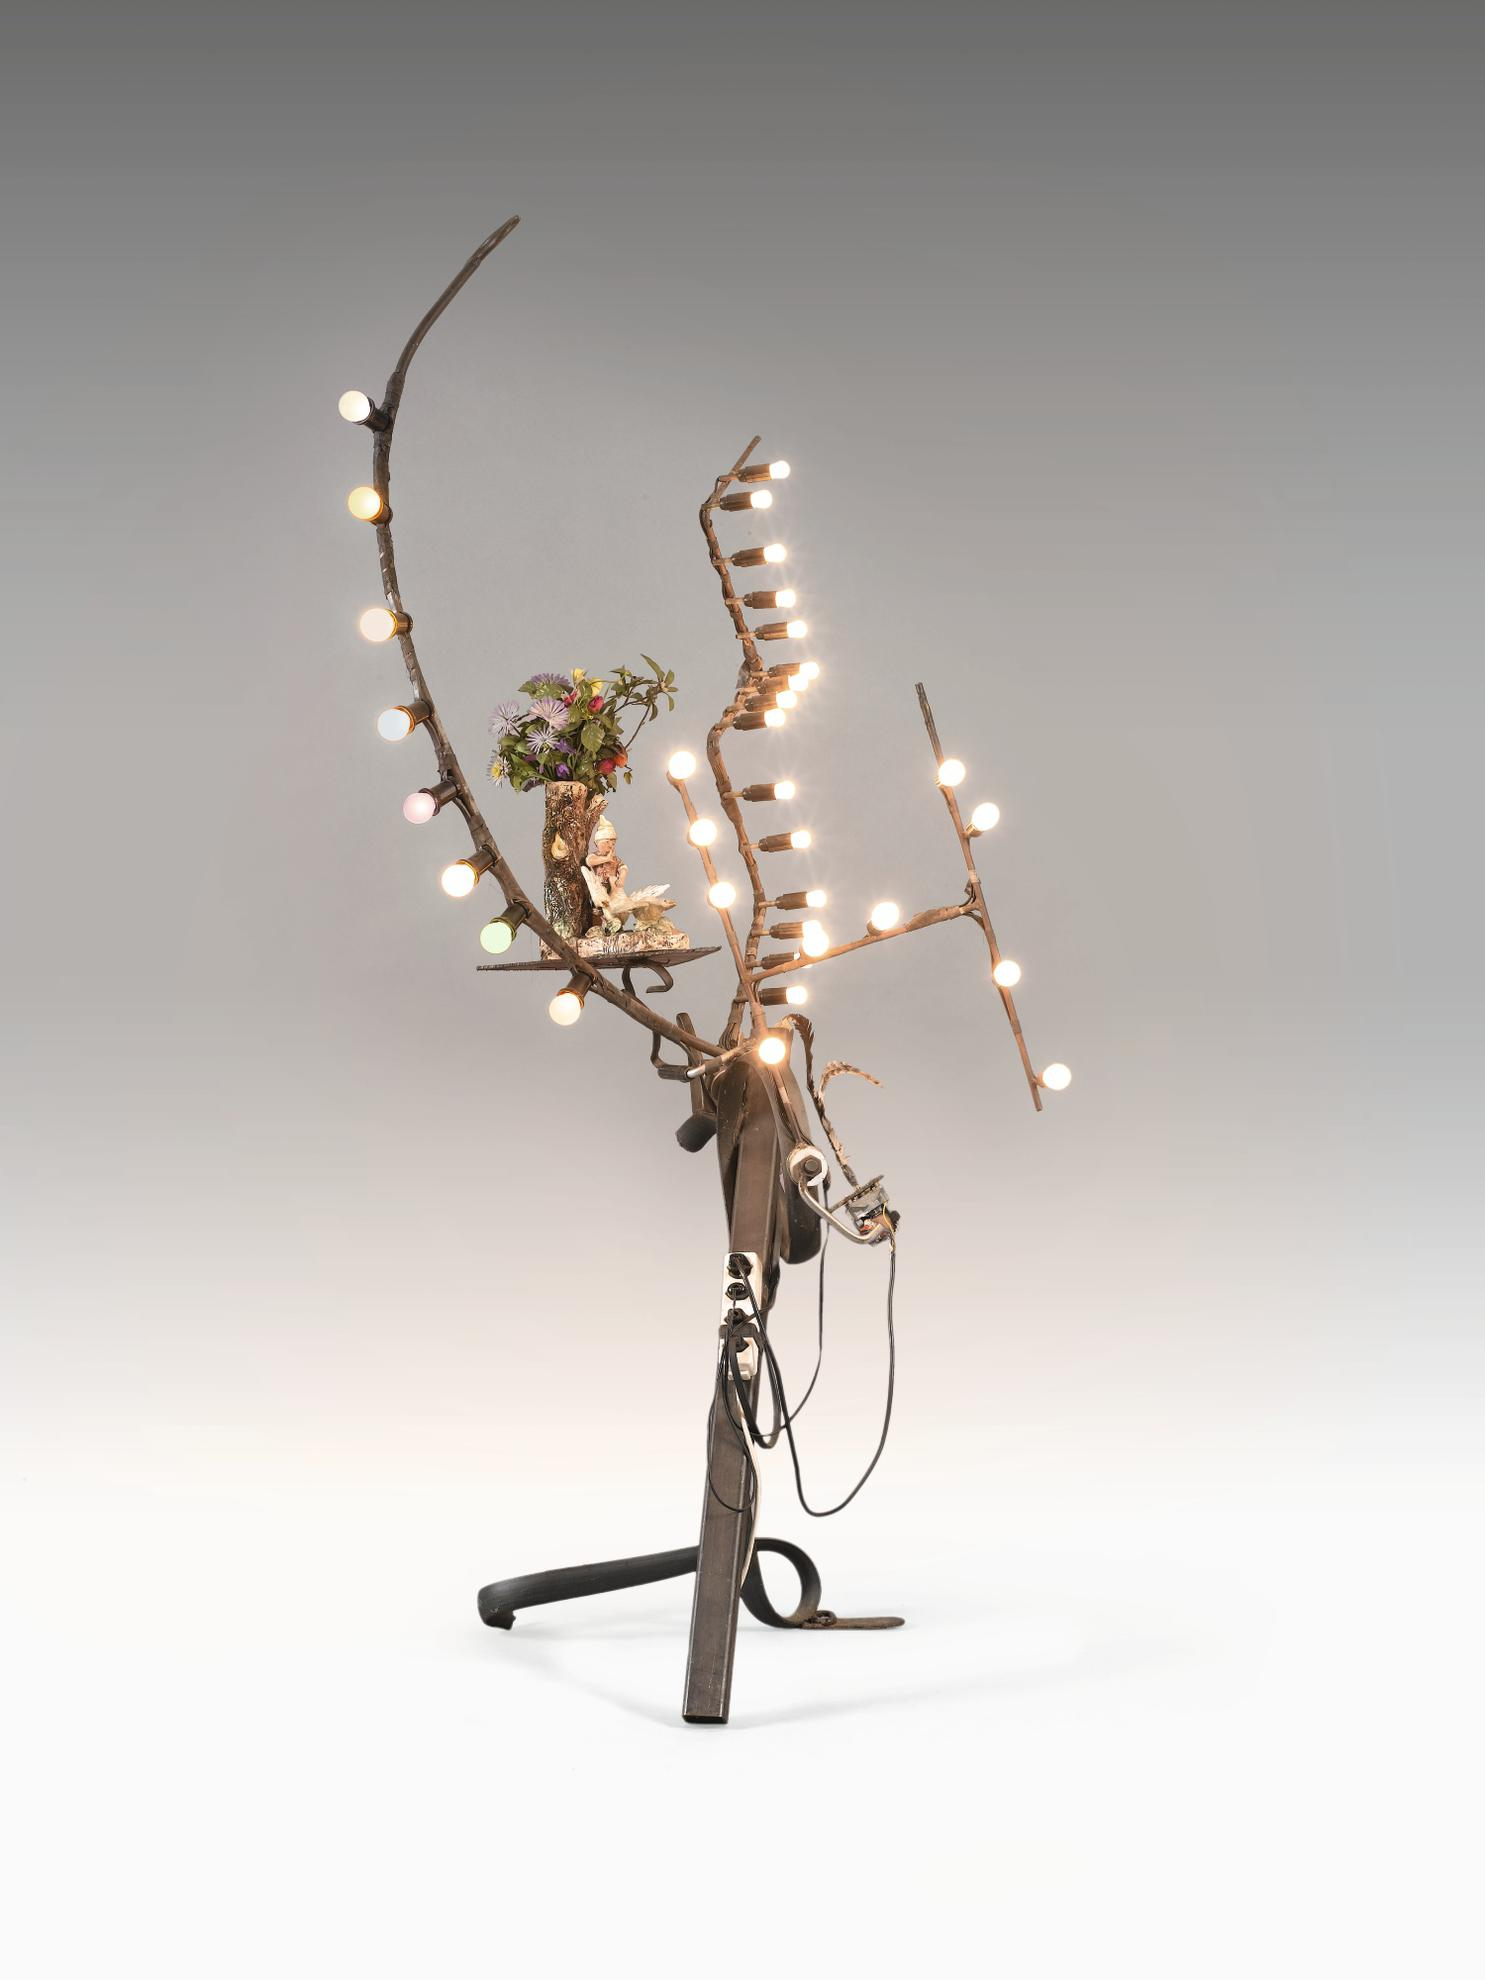 Jean Tinguely-Untitled (Lamp)-1989